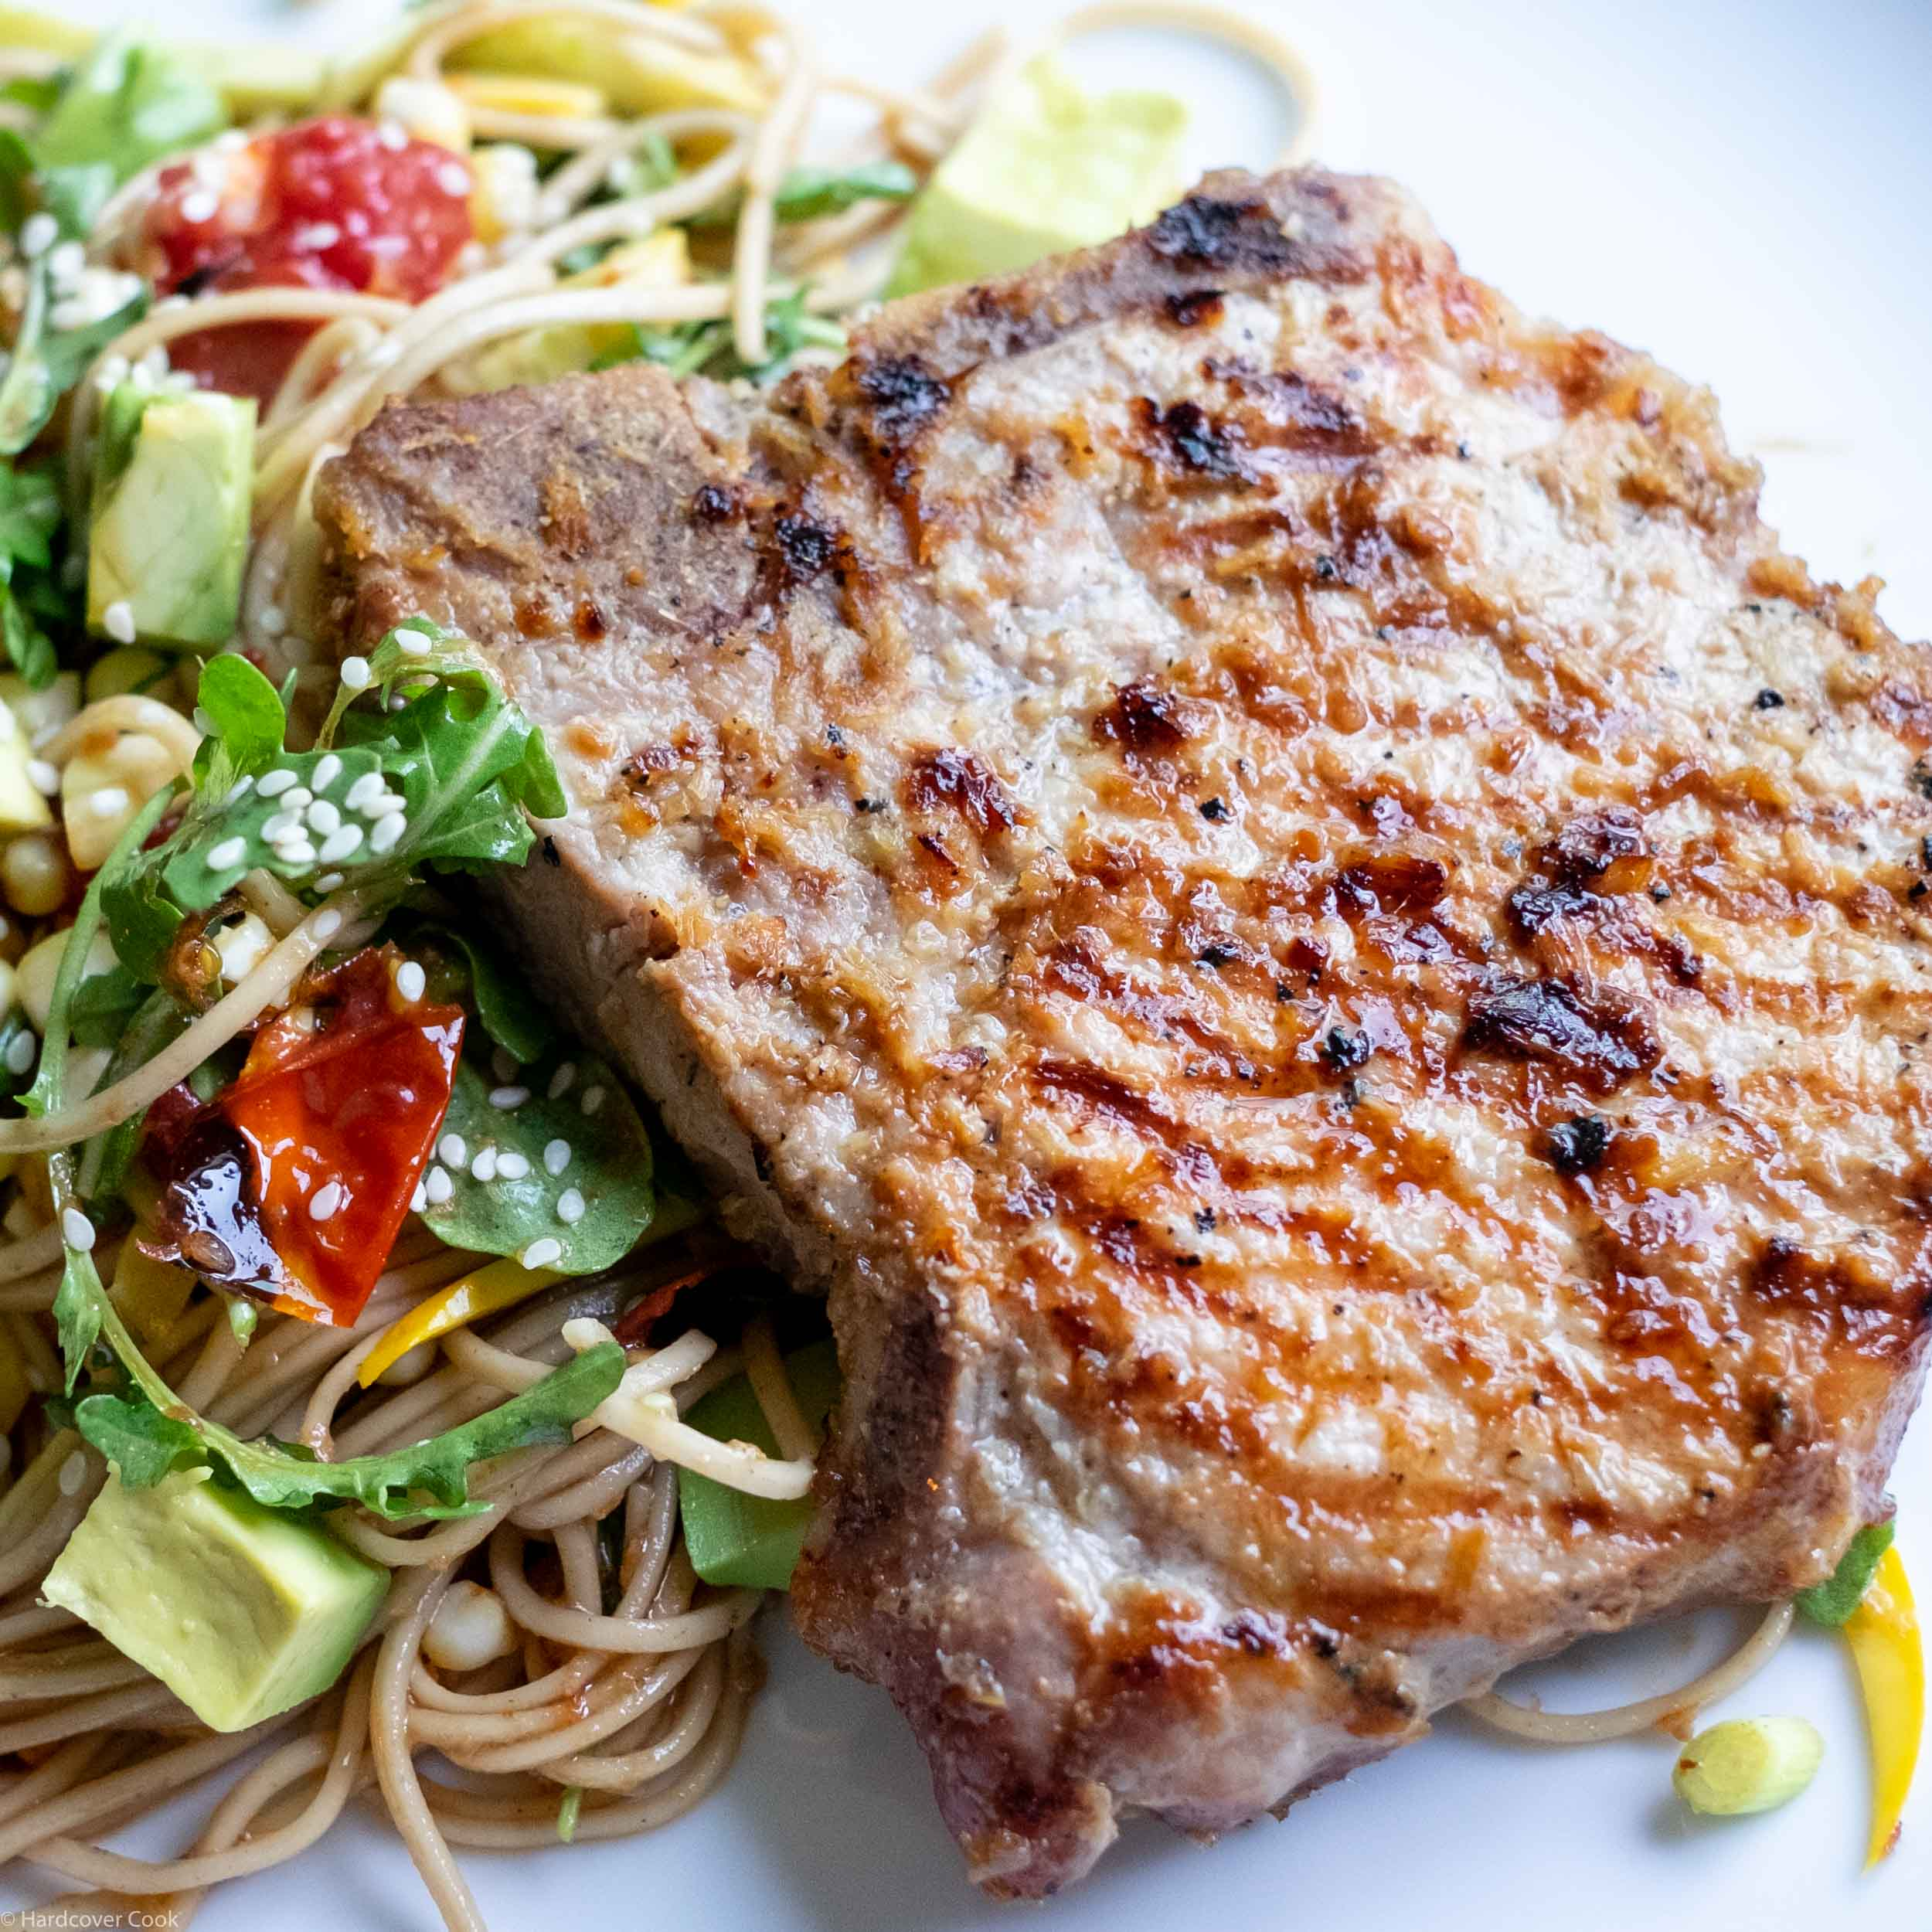 lemongrass-pork-chop-from-vietnamese-food-any-day.jpg